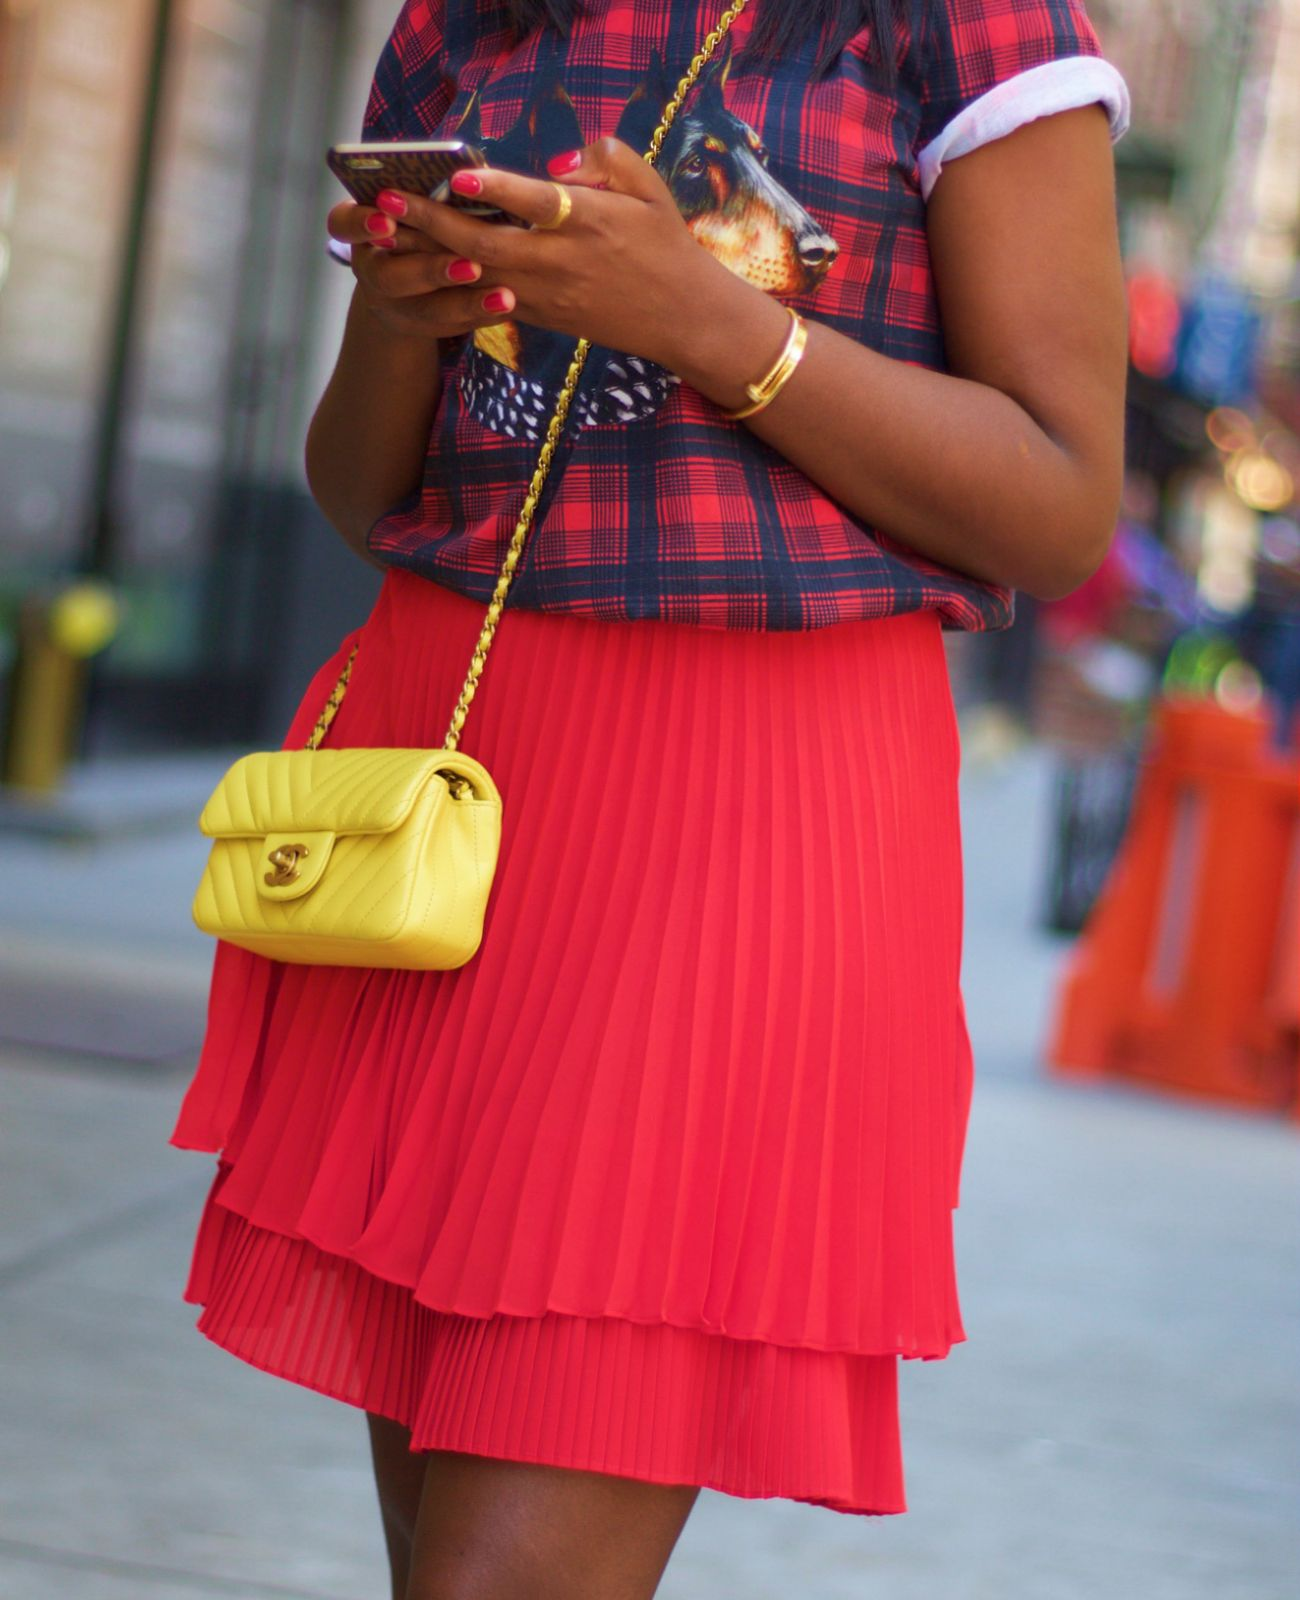 chanel yellow. yellow chanel mini and a red top shop skirt